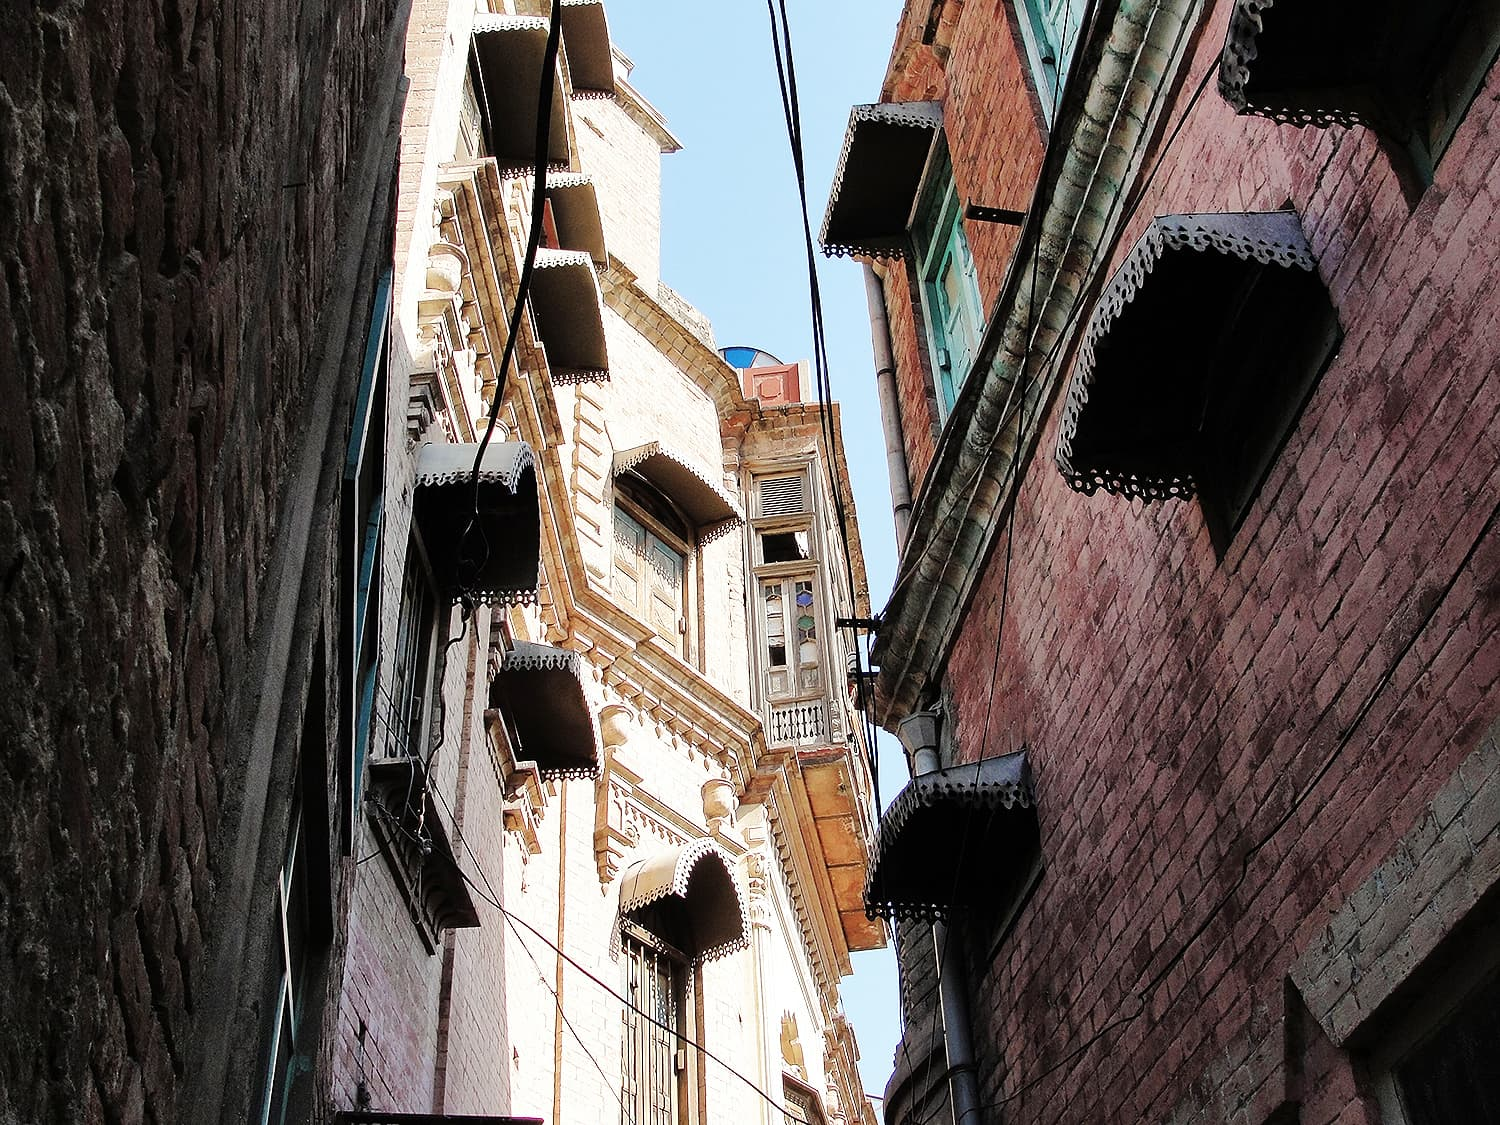 Windows of Hari Mandir and nearby haveli.